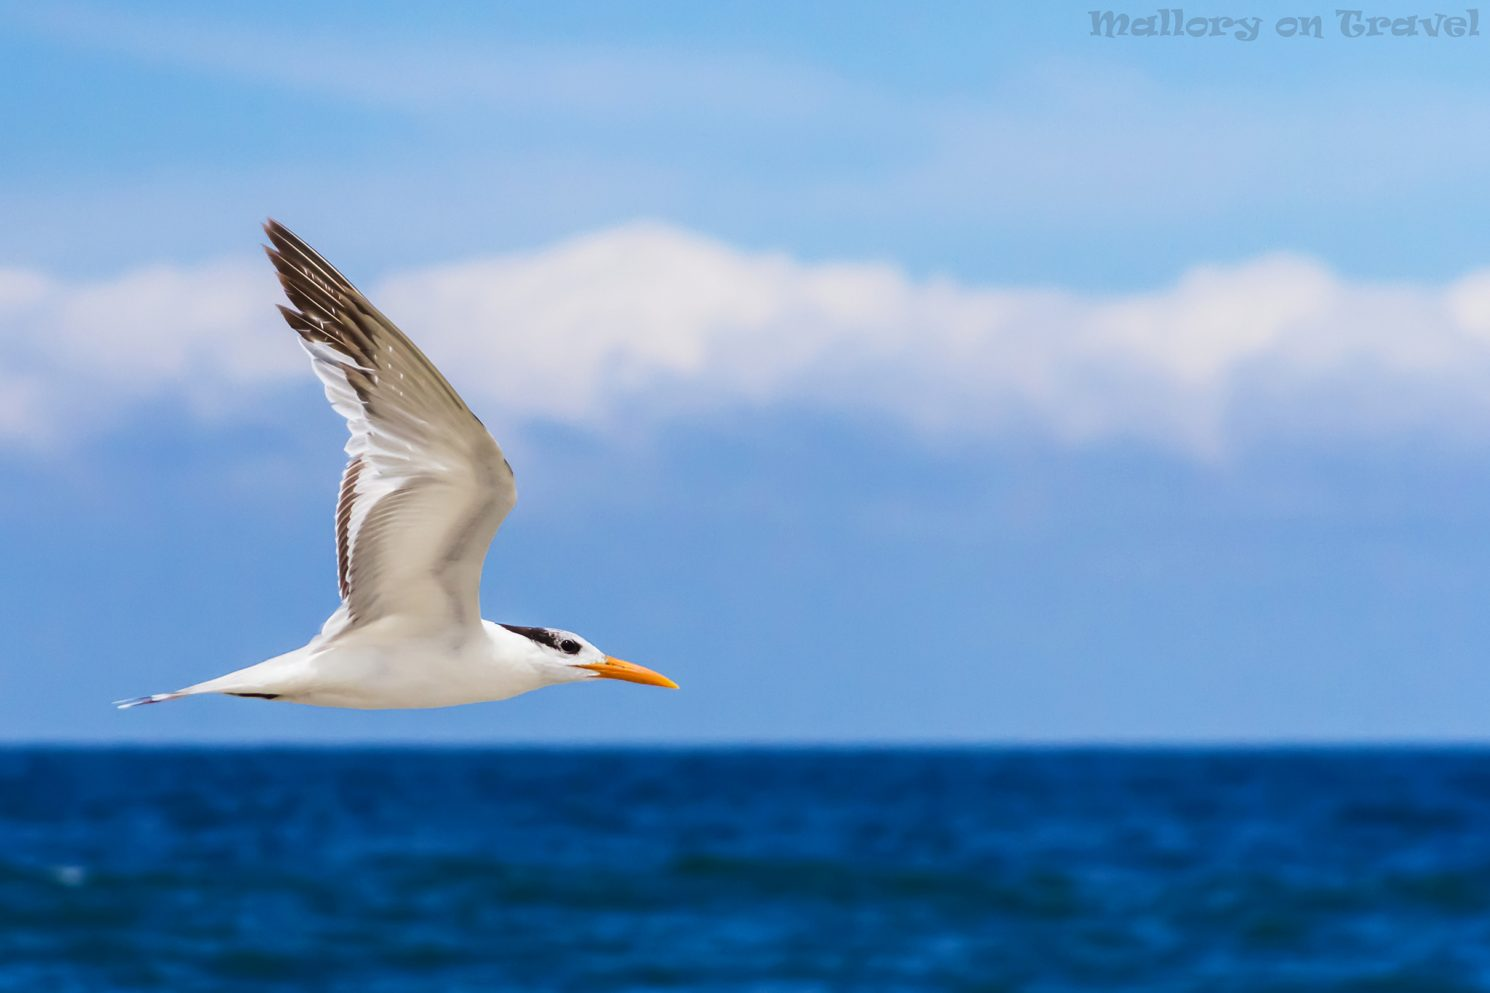 Freedom is epitomised by a tern in flight in Riviera Maya, Mexico on Mallory on Travel adventure travel, photography, travel Iain_Mallory_mex16734